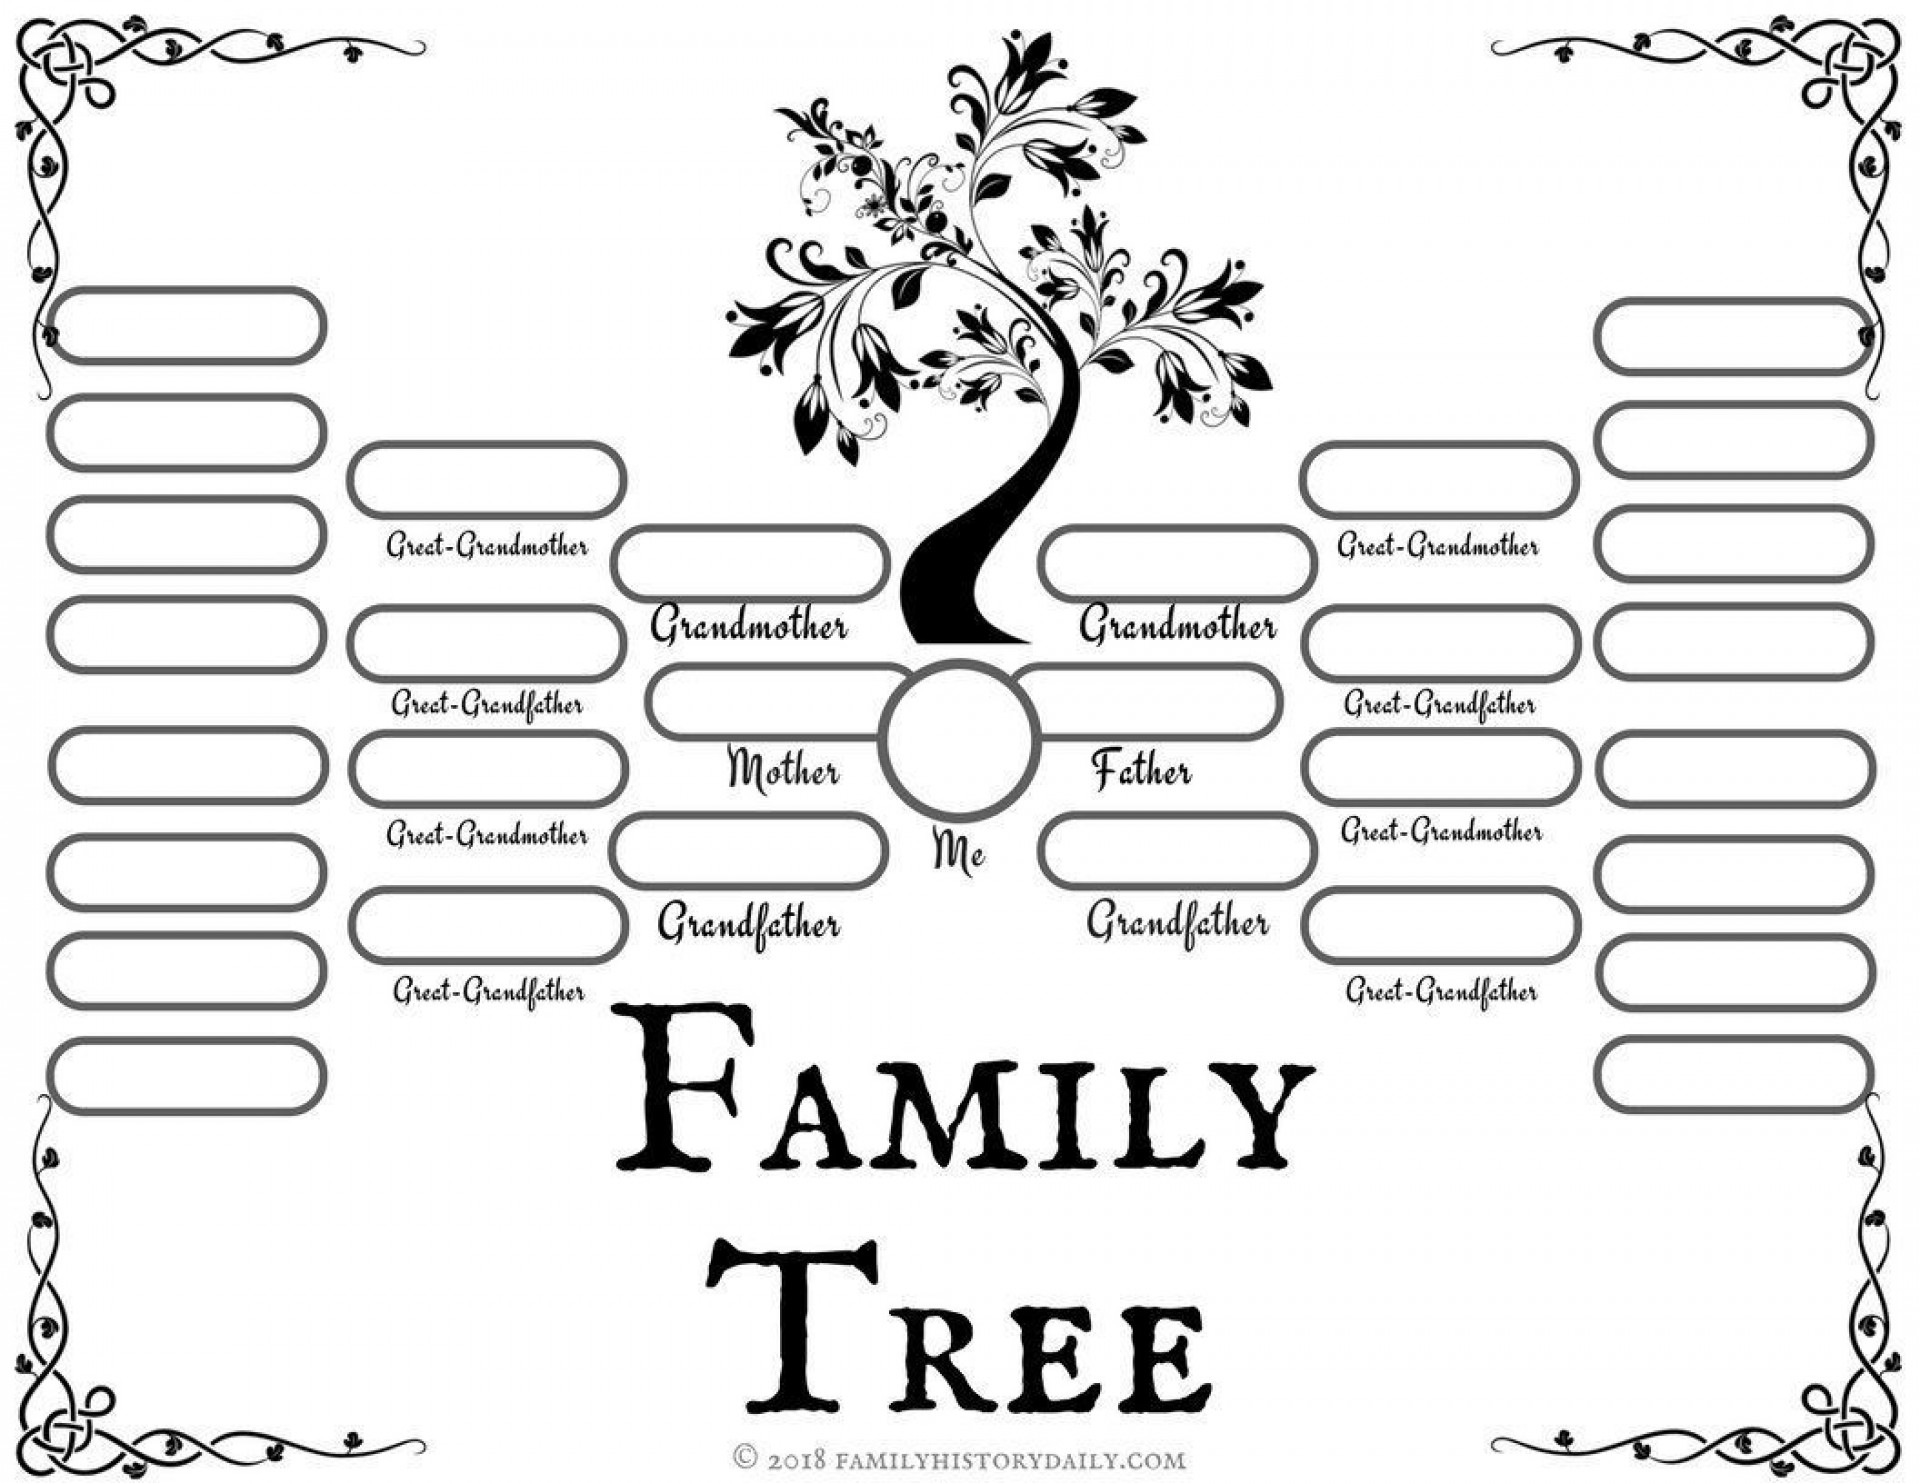 002 Frightening Family Tree Book Template Free High Resolution  History1920